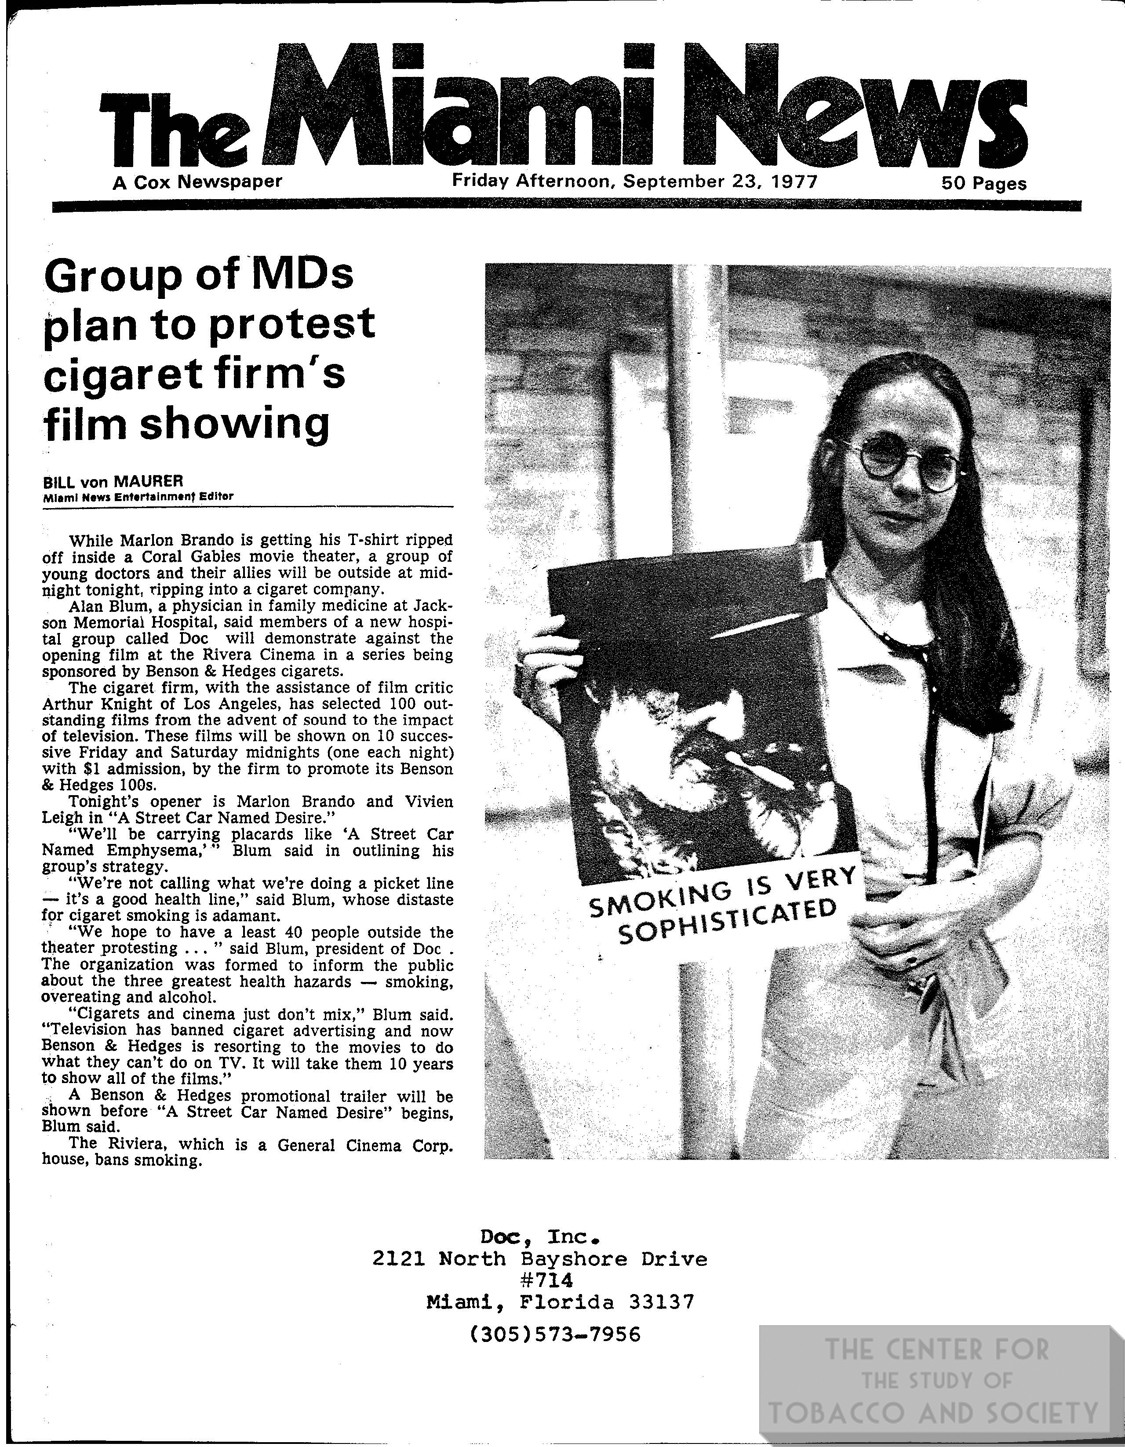 1977 09 23 Miami News MDs Plan to Protest Cig Firms Film Showing